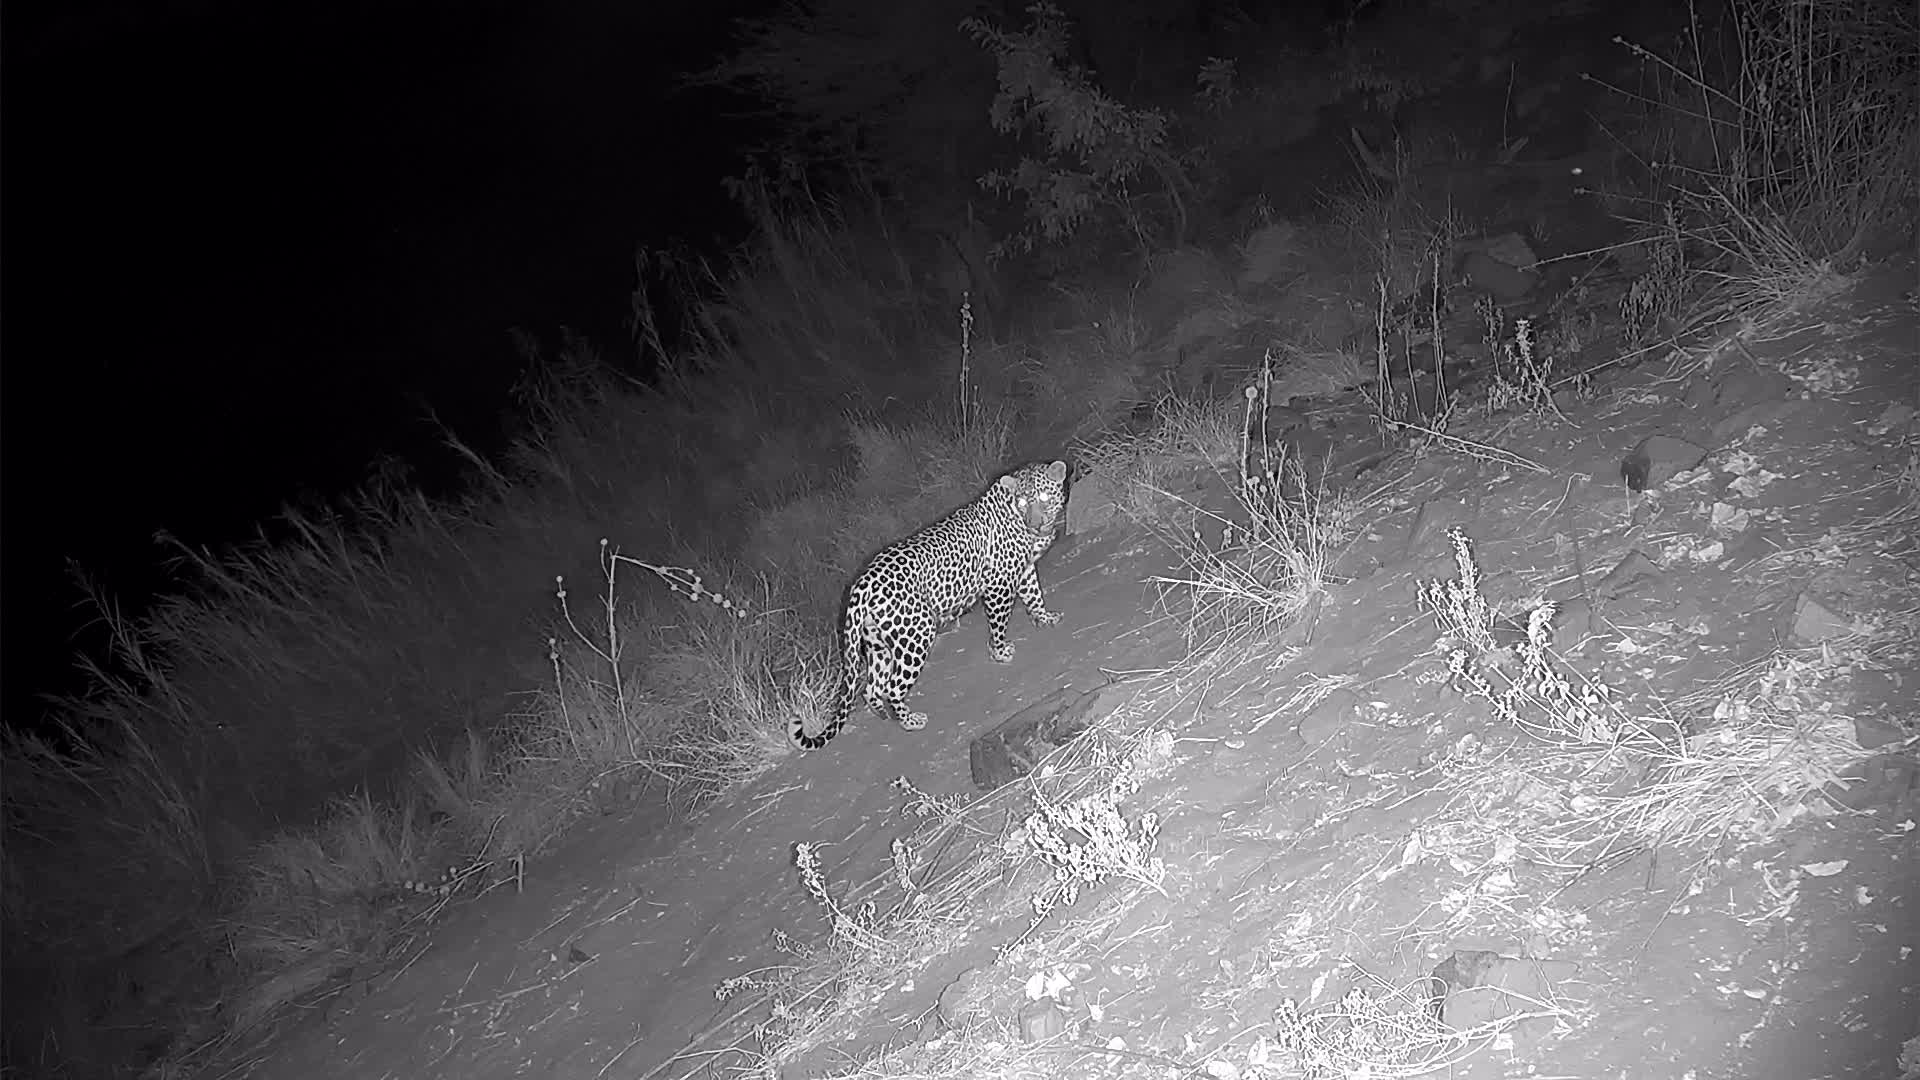 VIDEO:  Leopard passing by